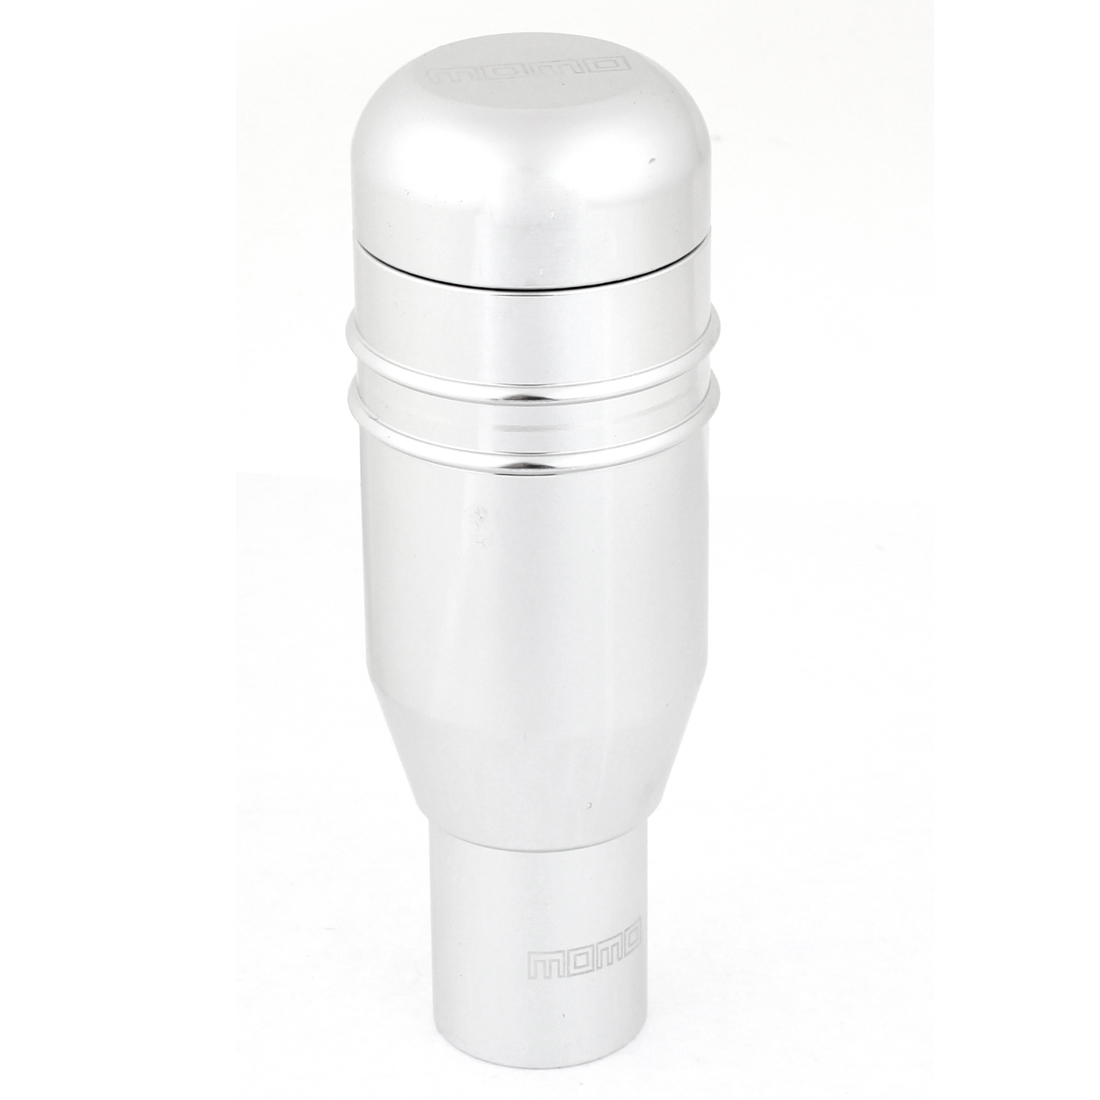 Silver Tone Metal Gear Shift Lever Knob 9.7cm Long for Car